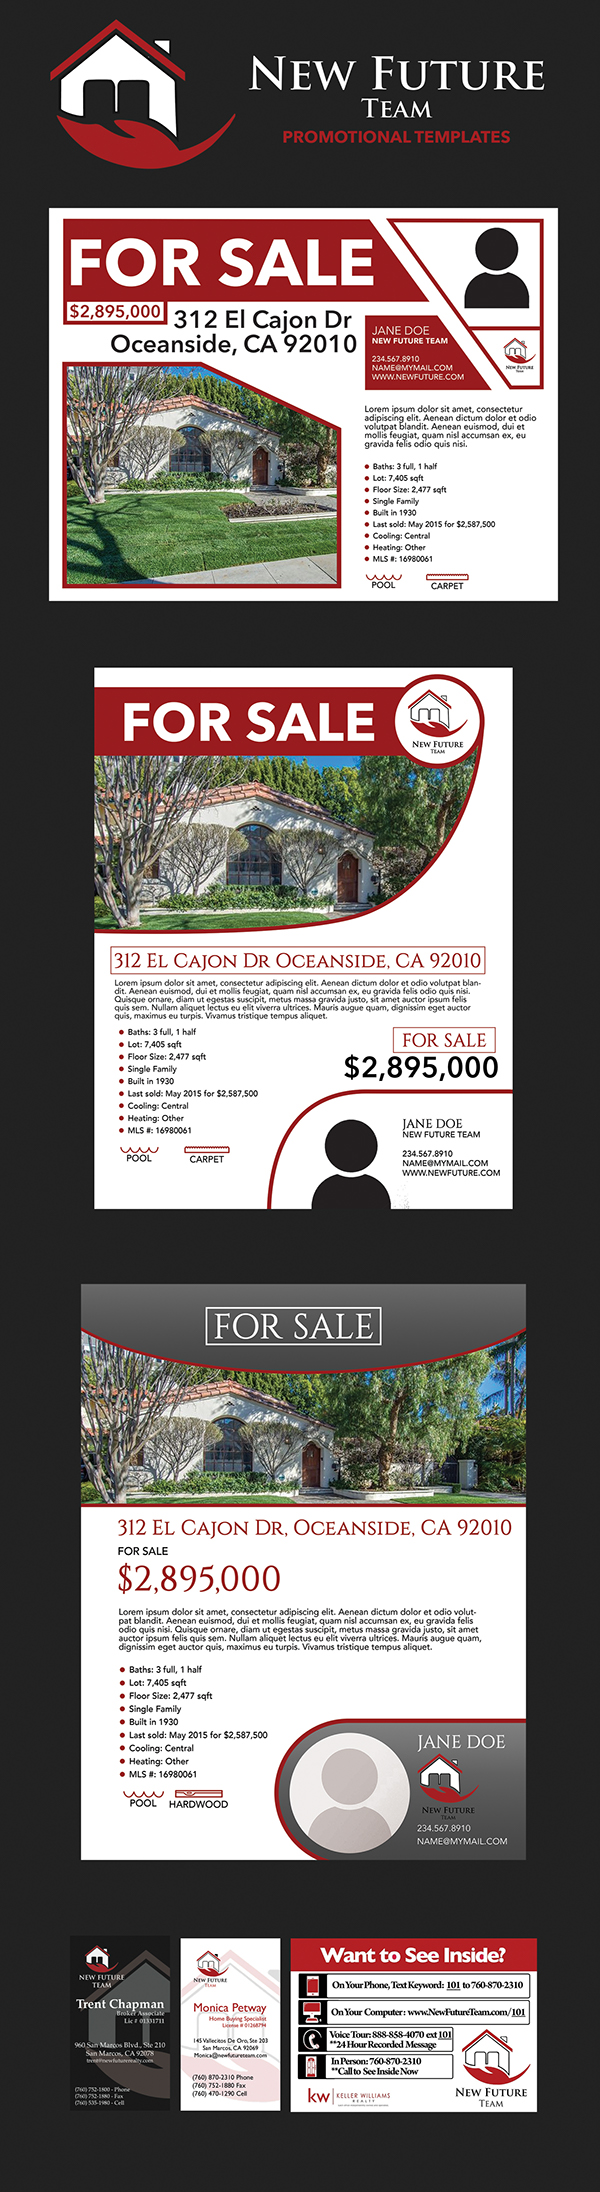 Real Estate Print Media Templates On Wacom Gallery